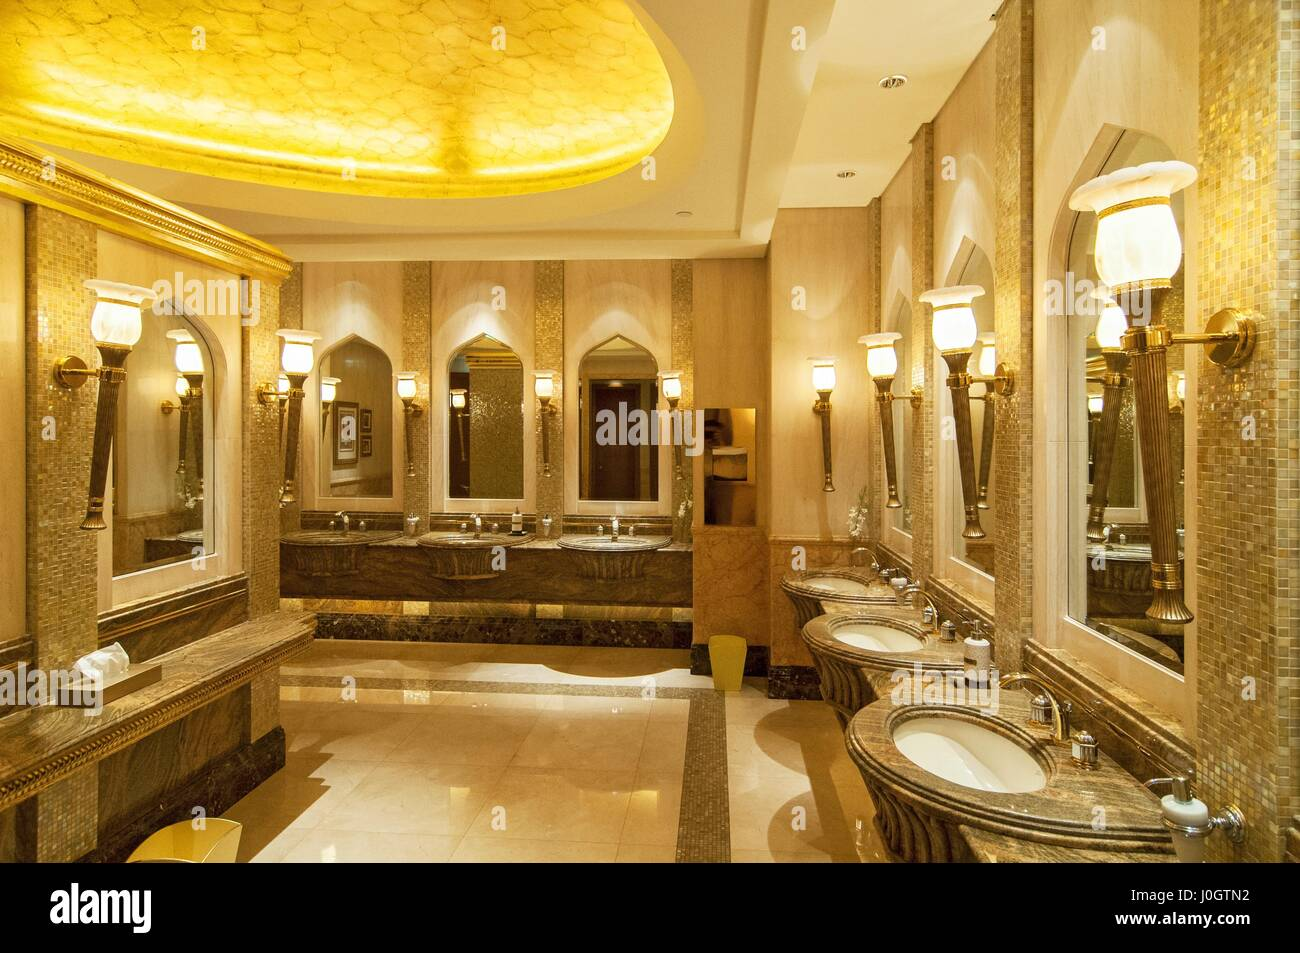 Toilet Decoration In Emirates Palace Hotel A Luxurious And The Most Expensive Star Abu Dhabi Capital City Of United Arab